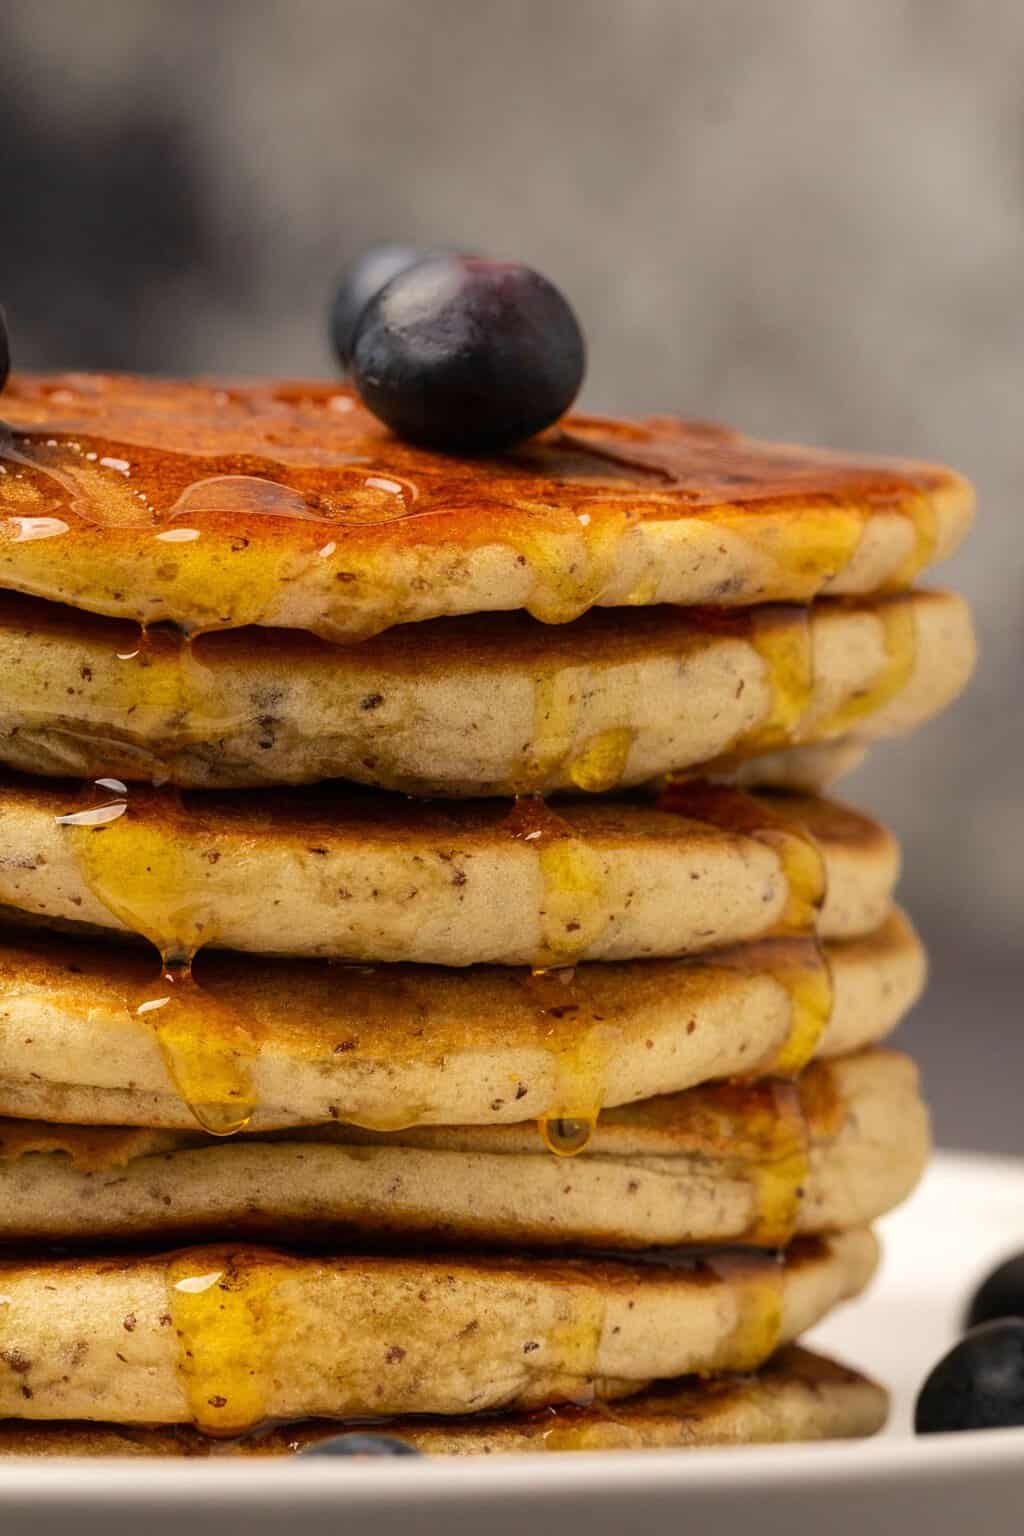 Vegan gluten free pancakes topped with syrup and fresh blueberries.